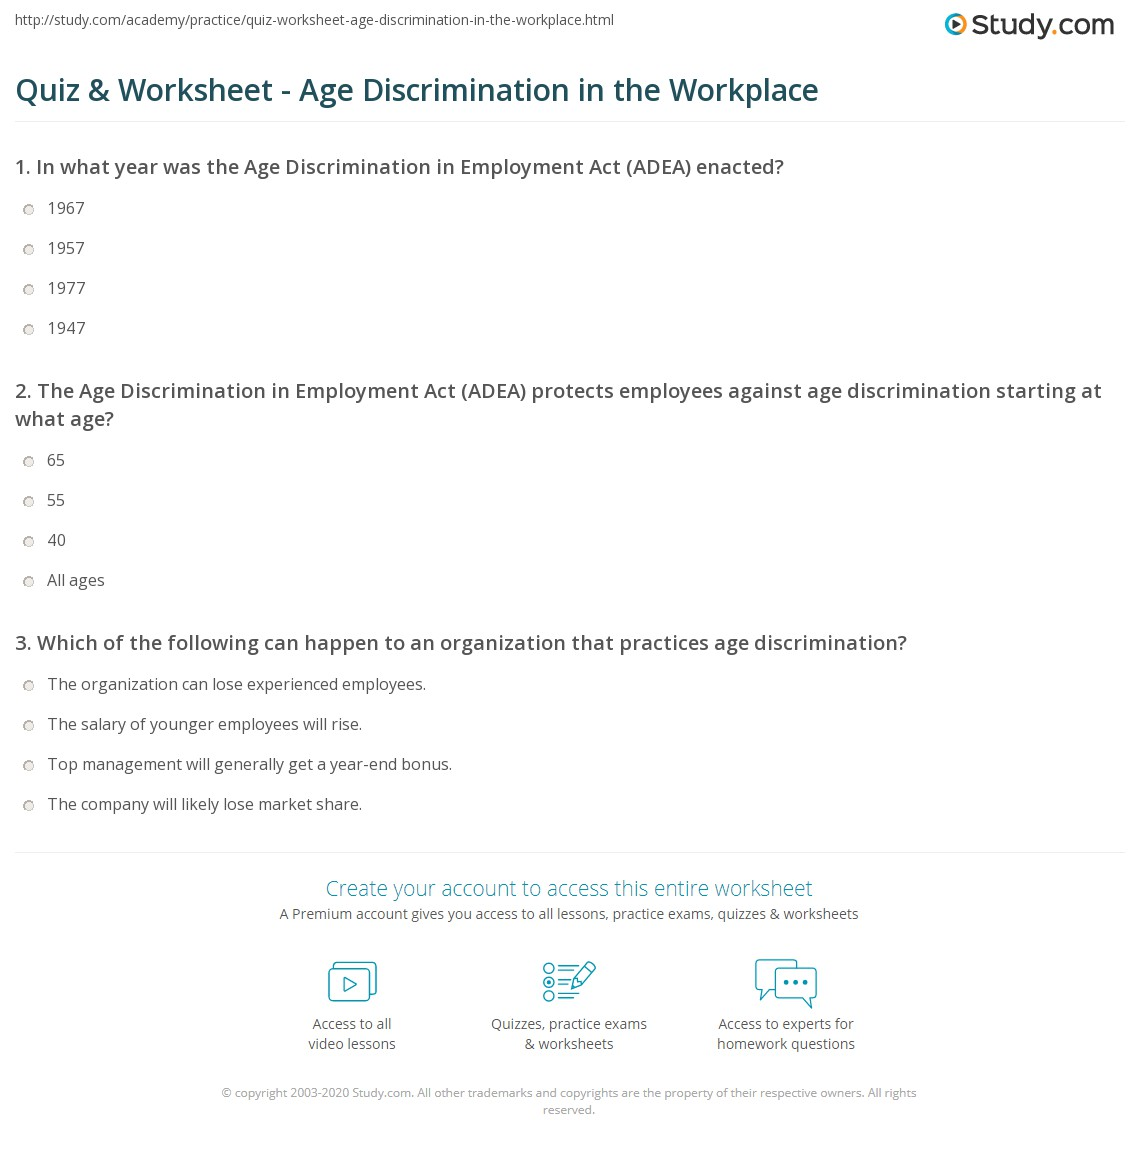 suggestions online images of age discrimination in employment the age discrimination in employment act adea protects employees